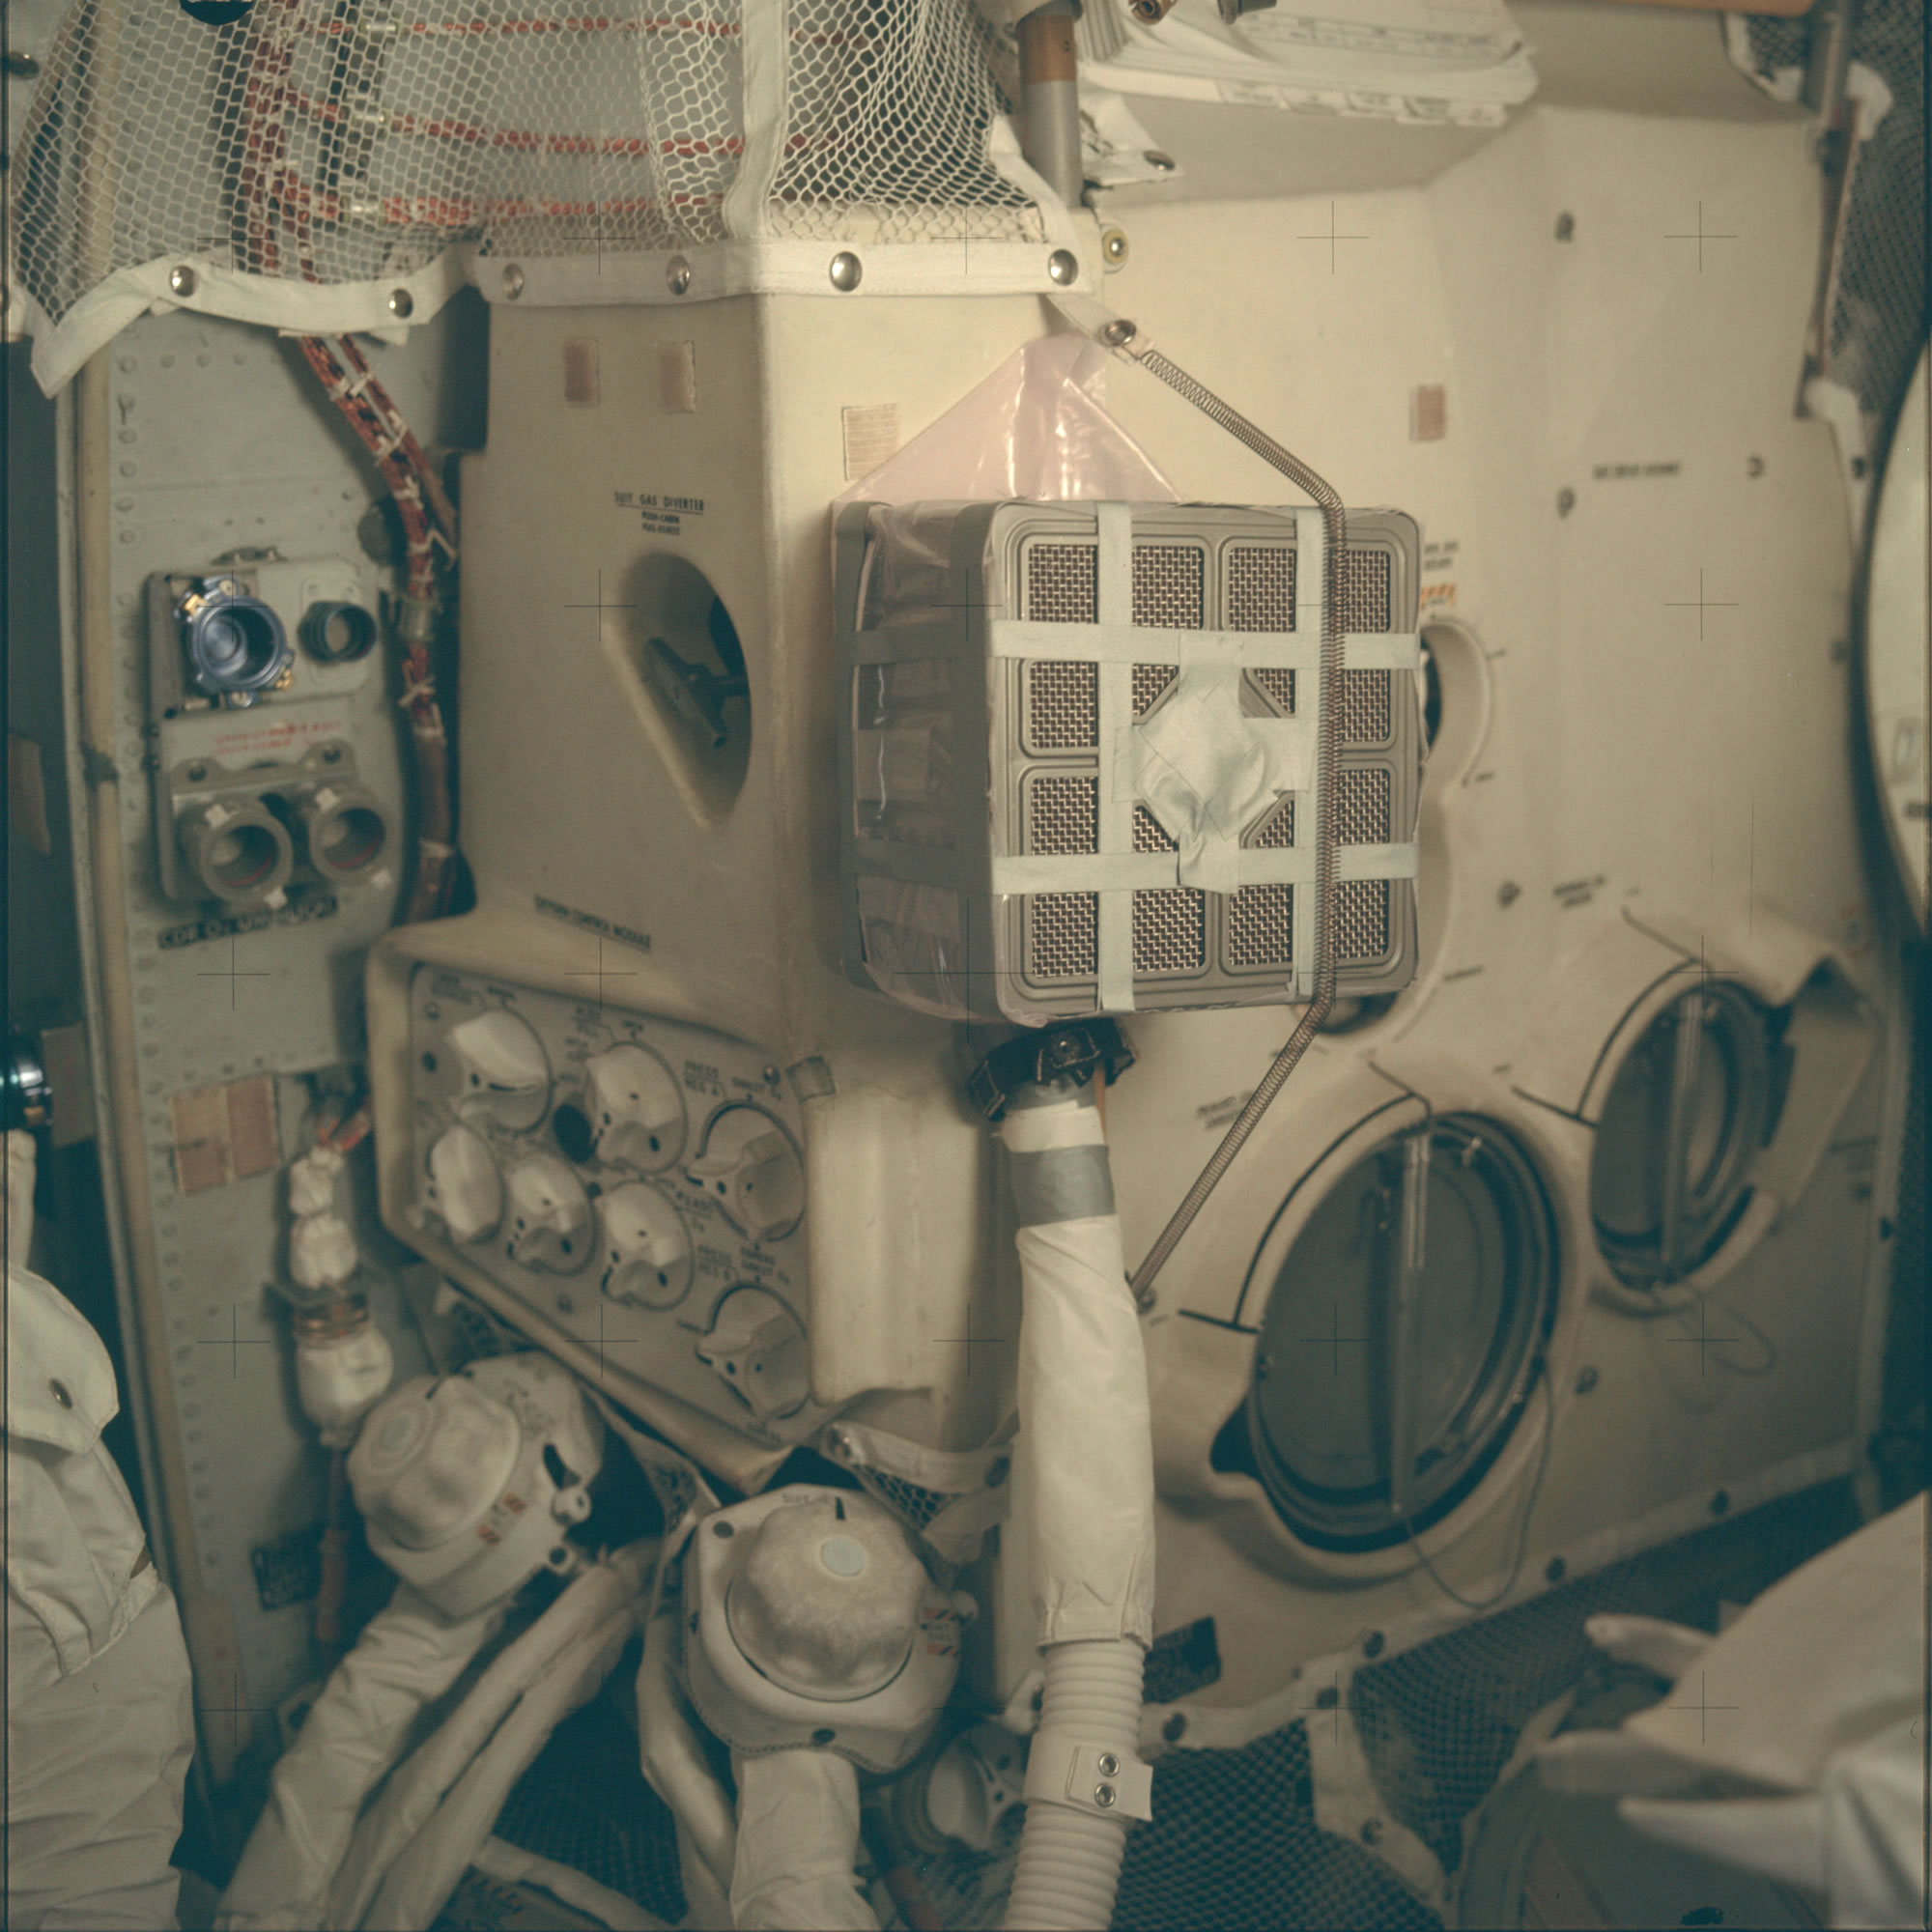 Apollo 13 Lithium Hydroxide Canisters